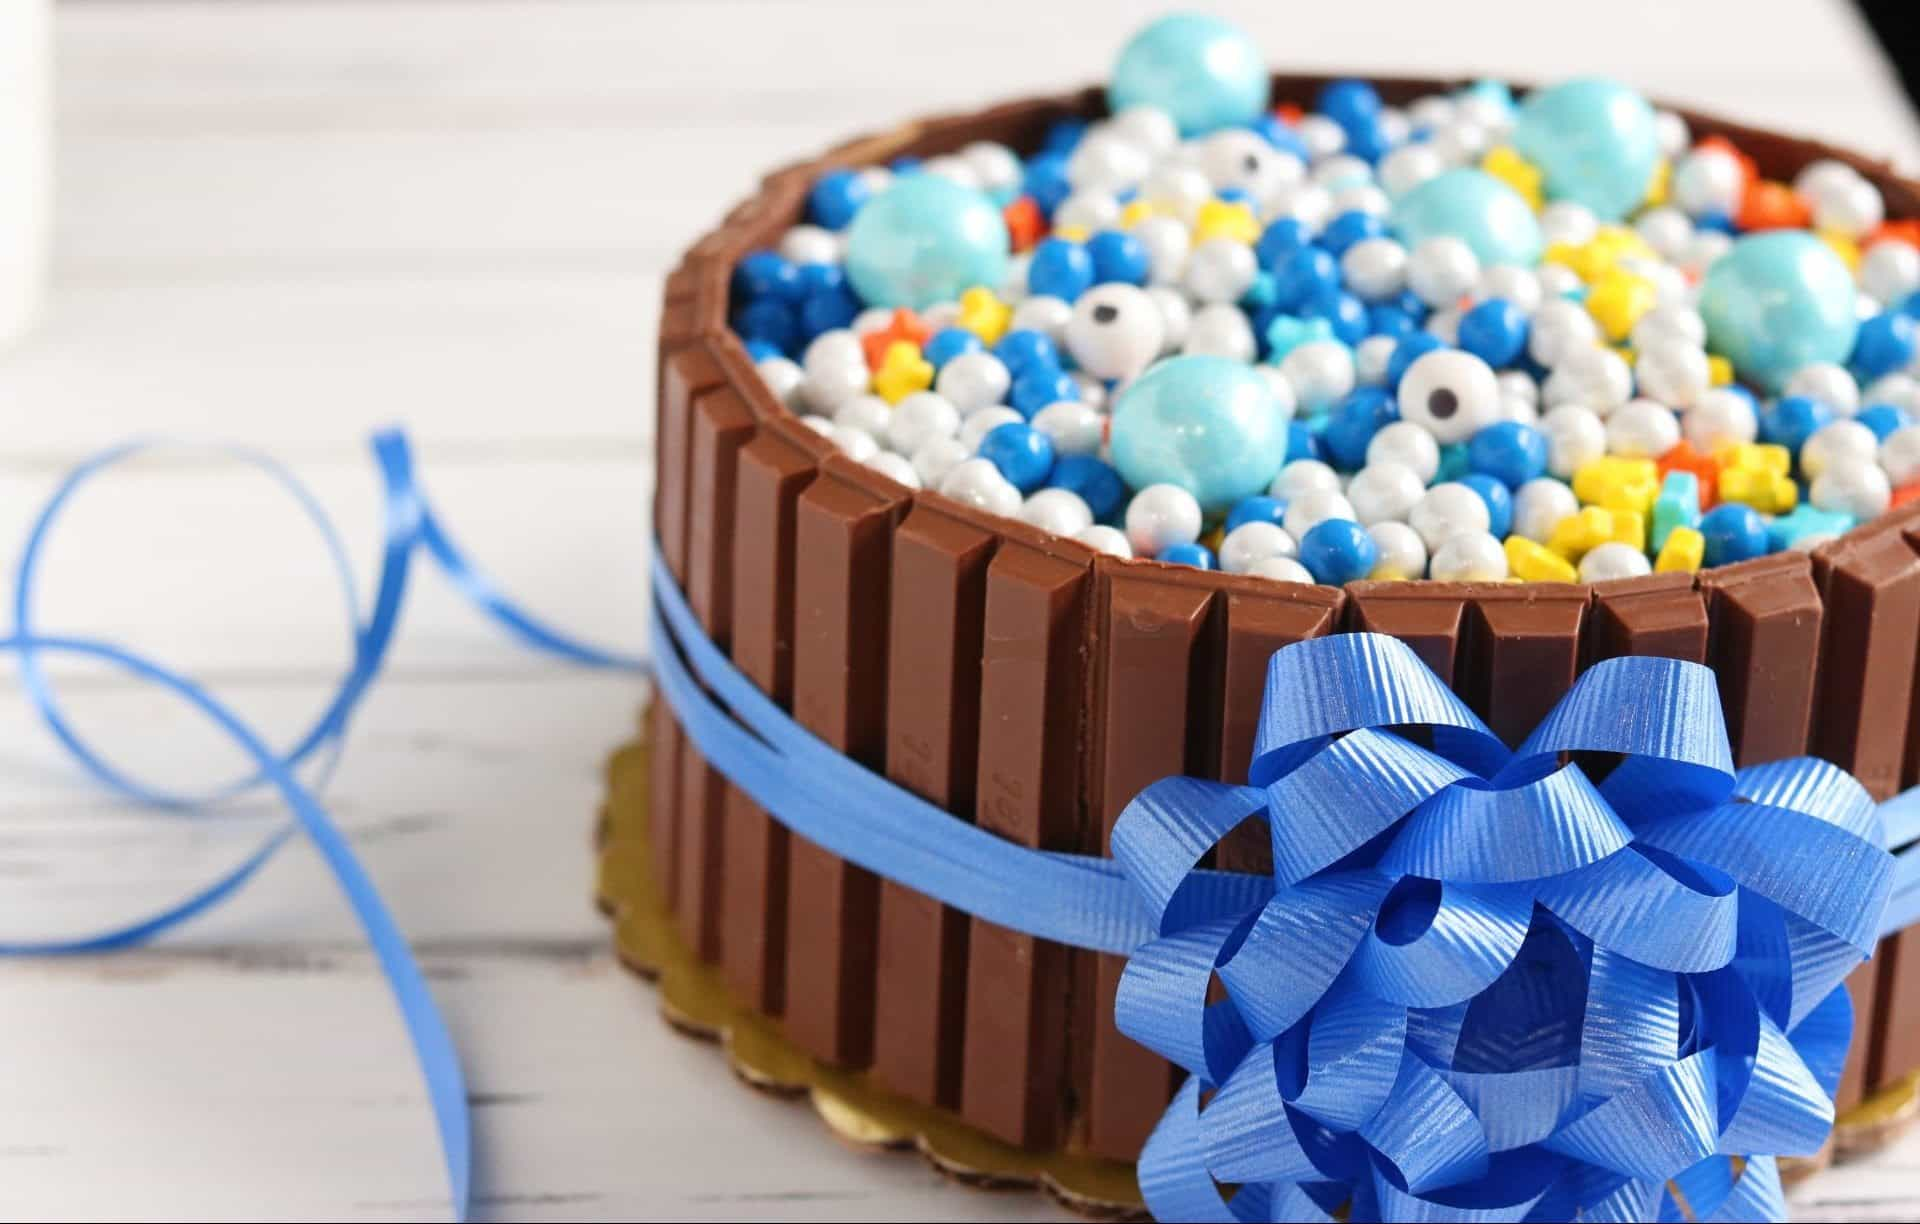 Closeup of celebration KitKat cake with blue ribbon and bow tied around it on white wood table.